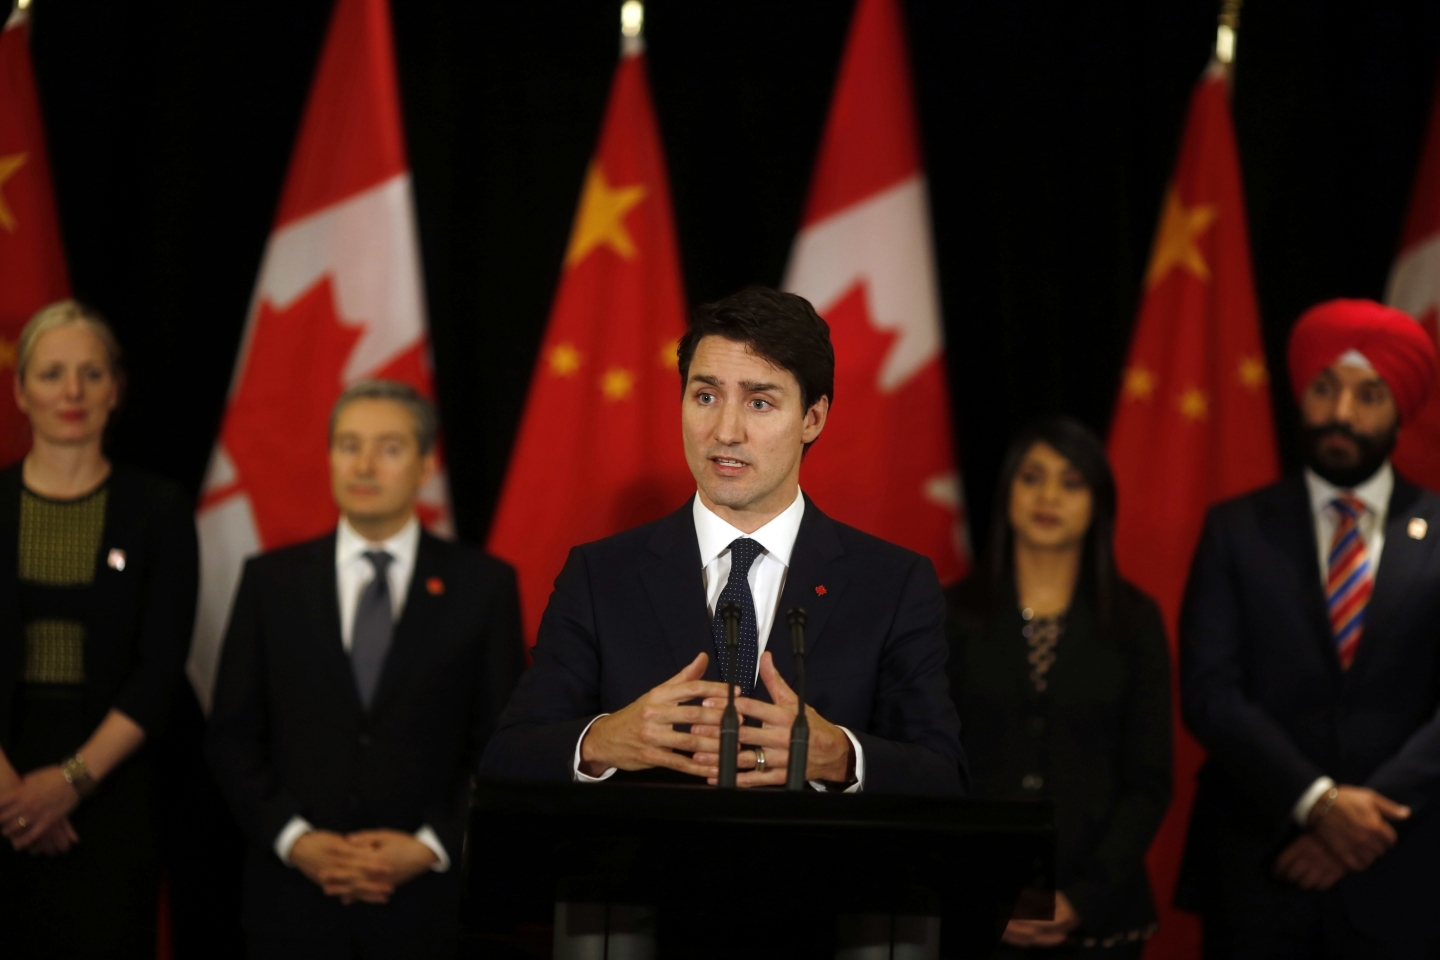 Canadian Prime Minister Justin Trudeau speaks to the media in China on December 5, 2017. (AP Photo/Ng Han Guan)